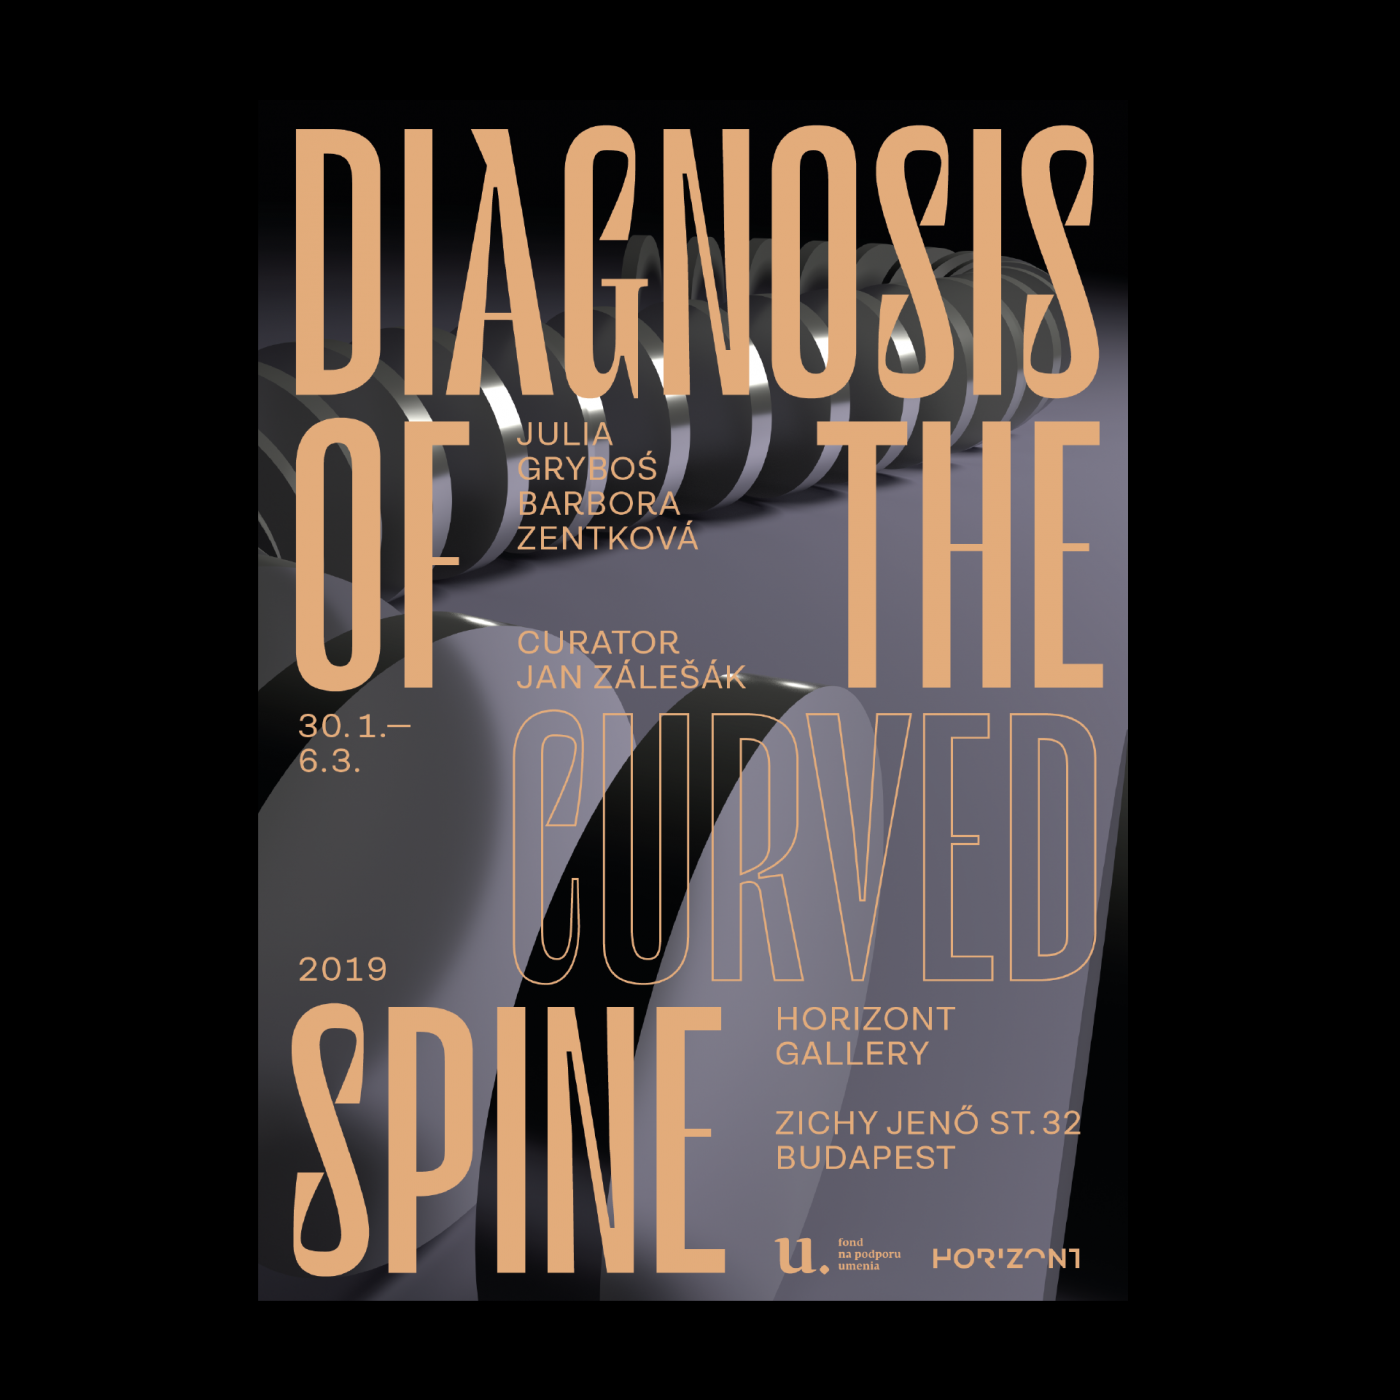 Diagnosis of the curved spine poster